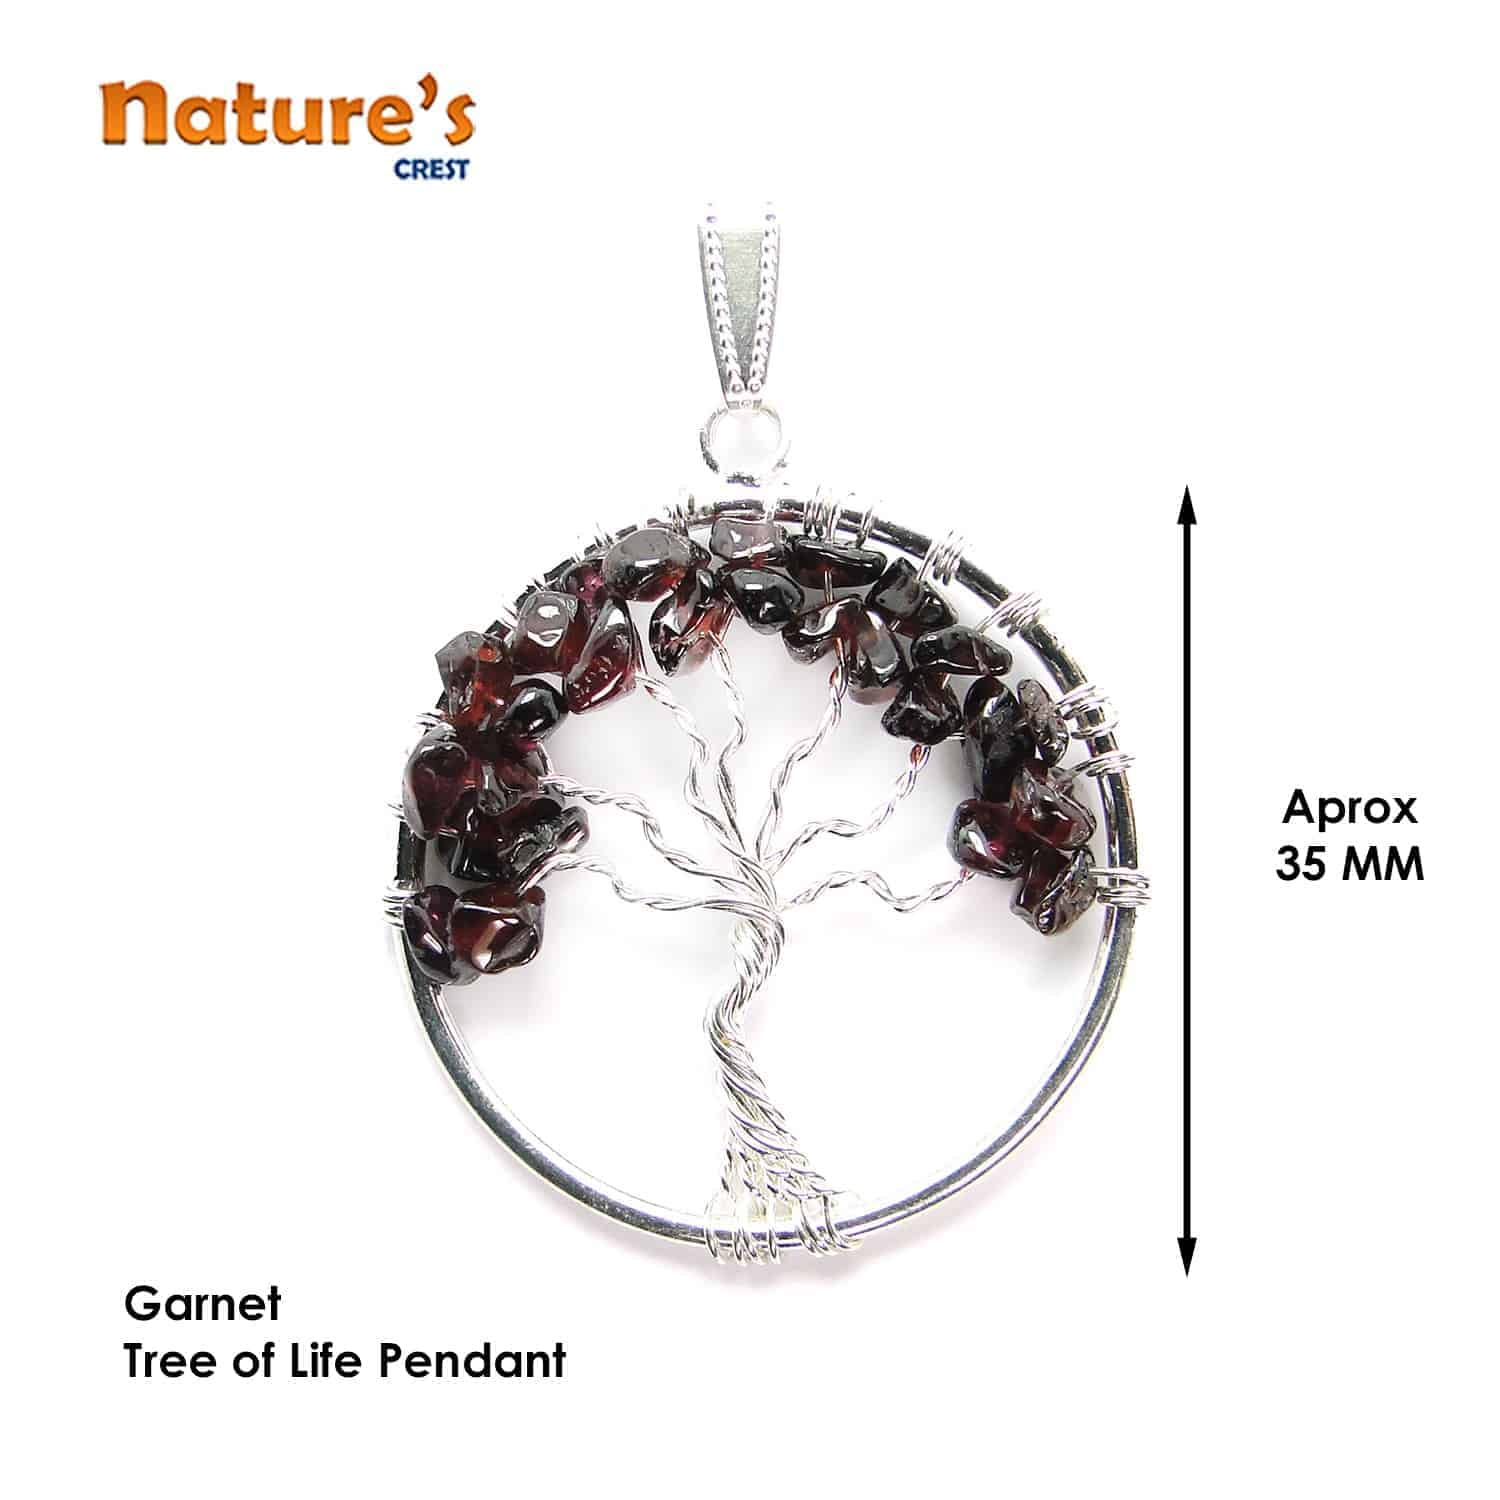 Garnet Tree of Life Pendant Nature's Crest TOL007 ₹ 249.00